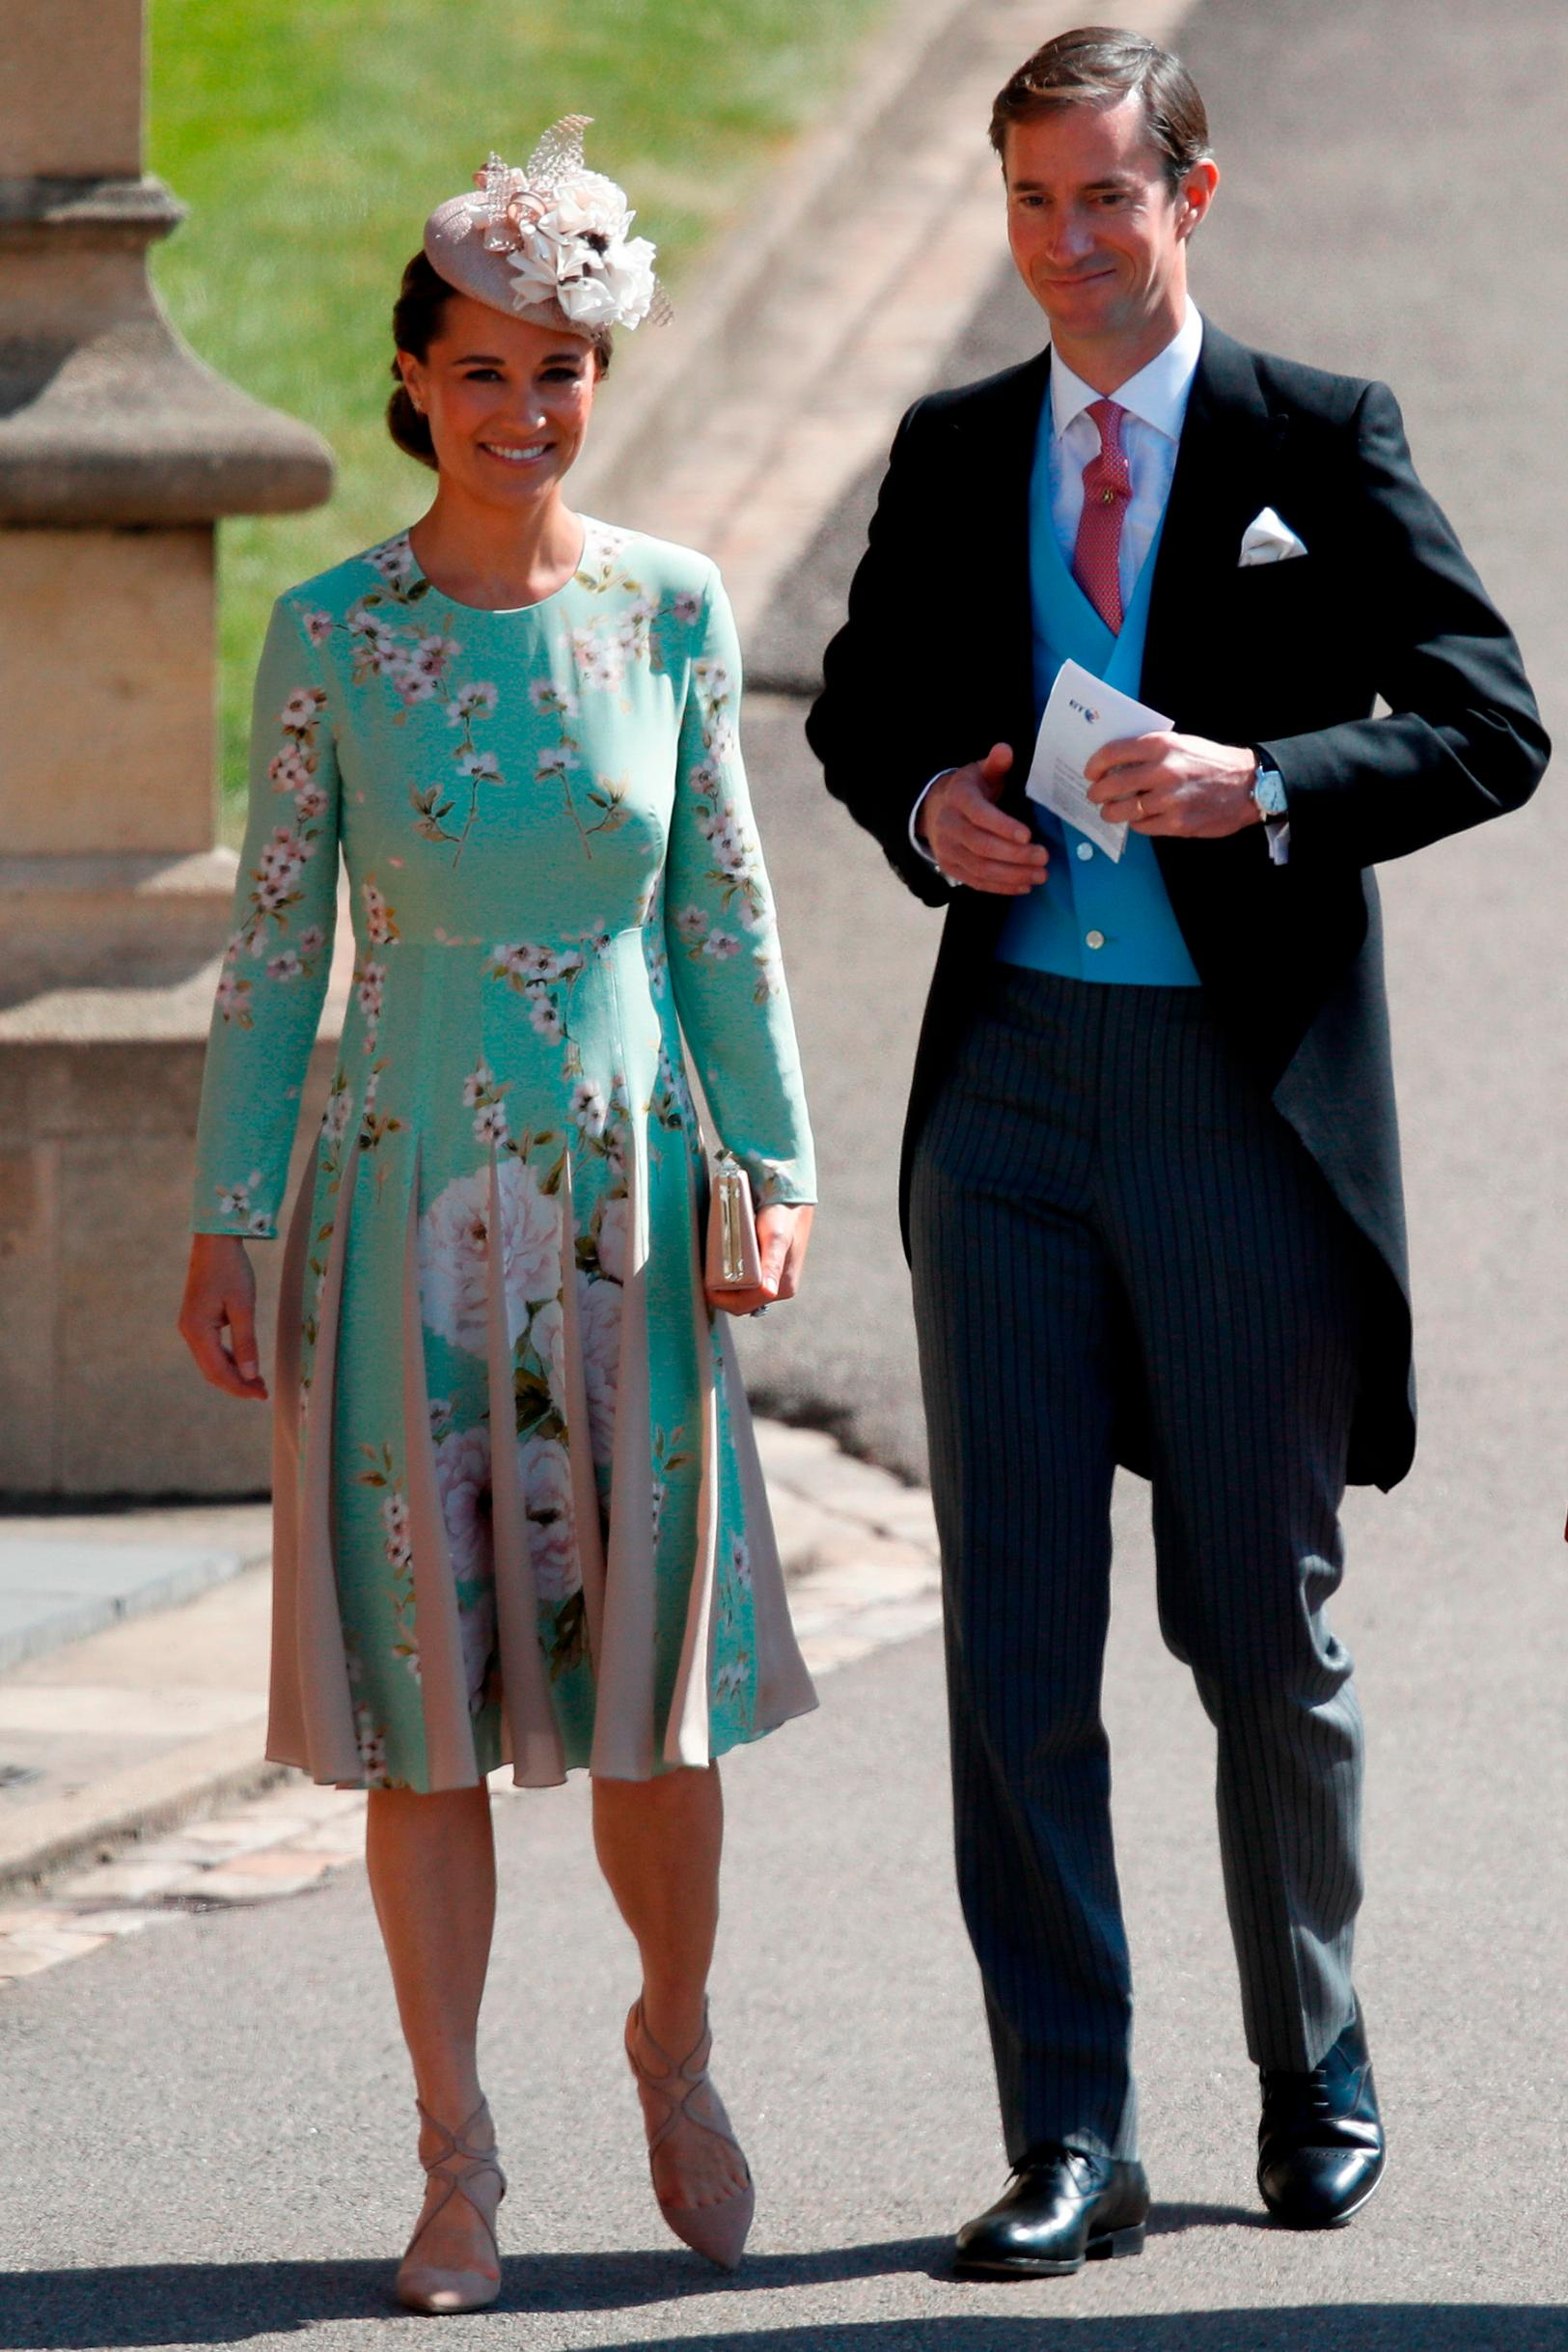 Royal Wedding Guests.Wedding Guest Fashion Bold And Bright At Windsor Cnn Style